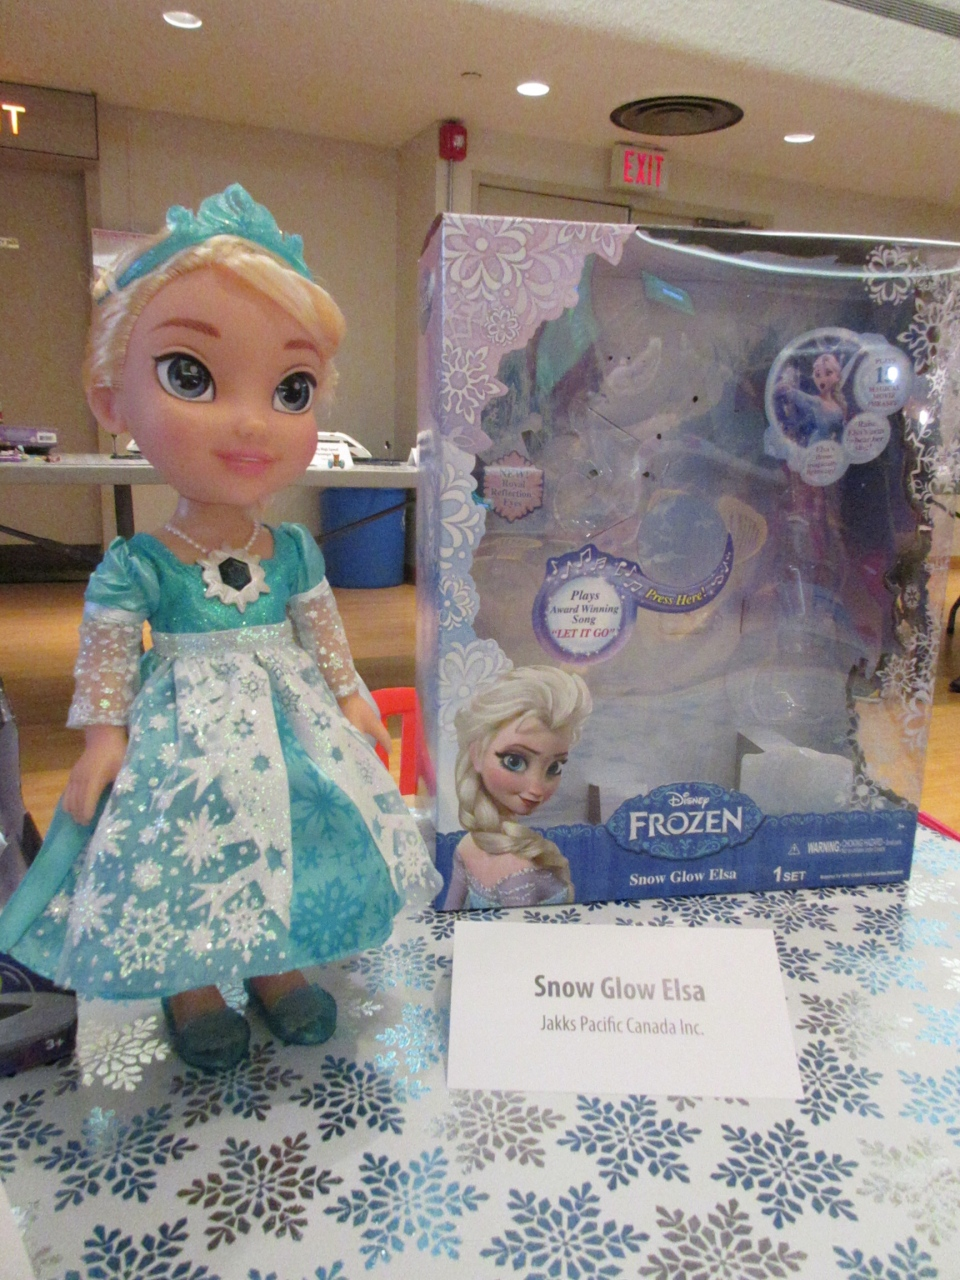 A doll based on one of the characters from the widely-popular Disney movie 'Frozen, Snow Glow Elsa is expected to be a big seller. (Angela Mulholland / CTVNews.ca)